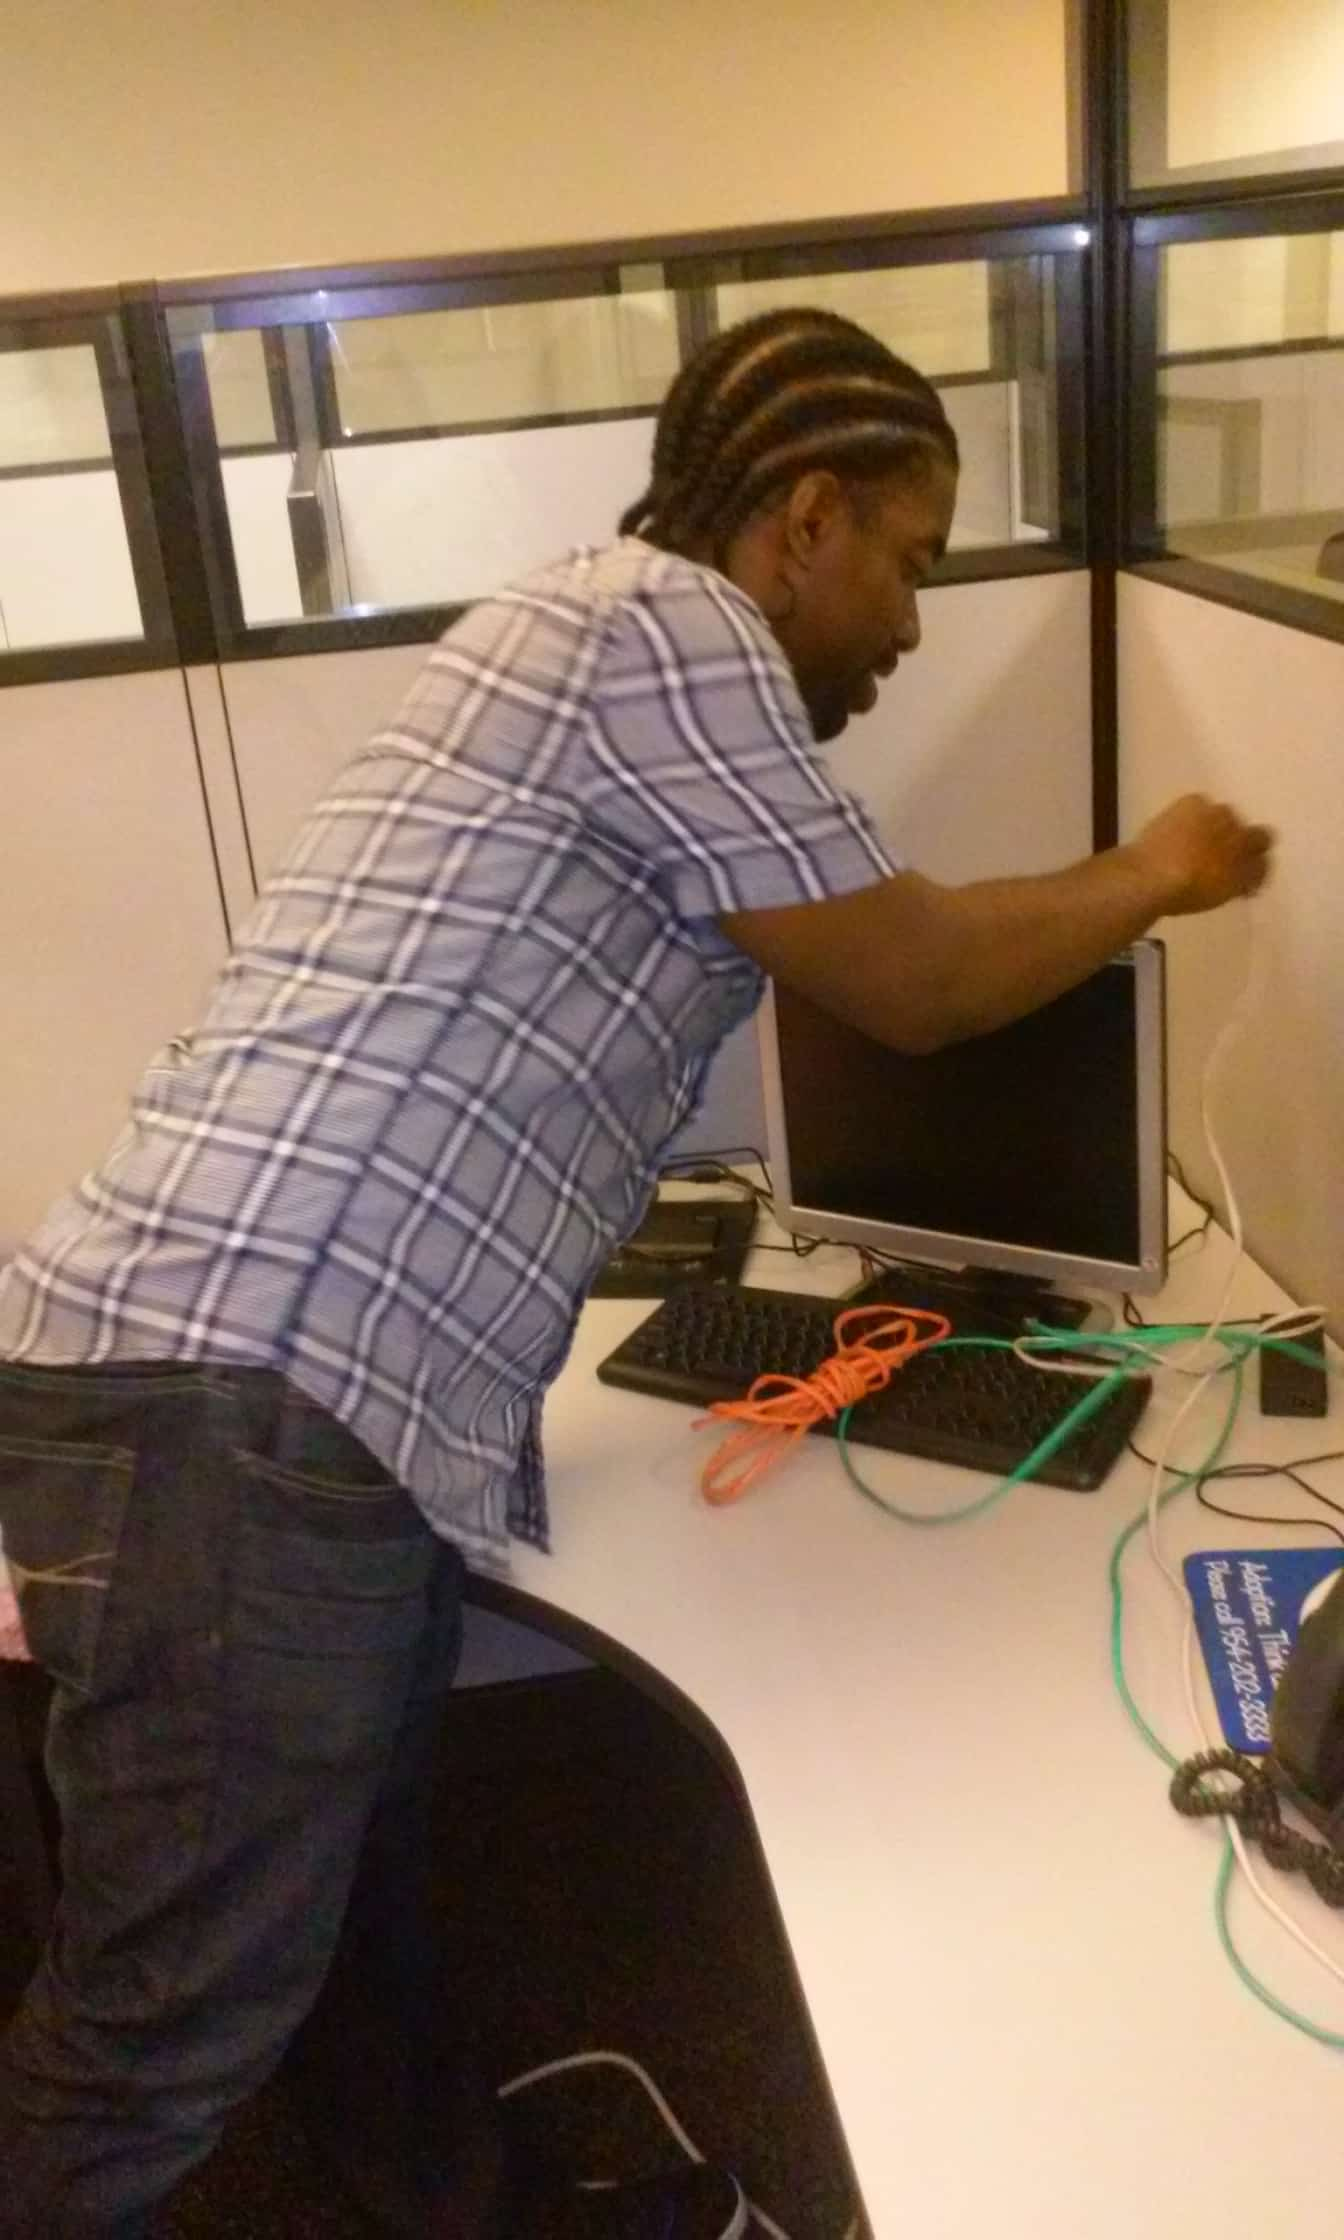 Information Technology Students from Ft. Lauderdale Volunteer Time with ChildNet